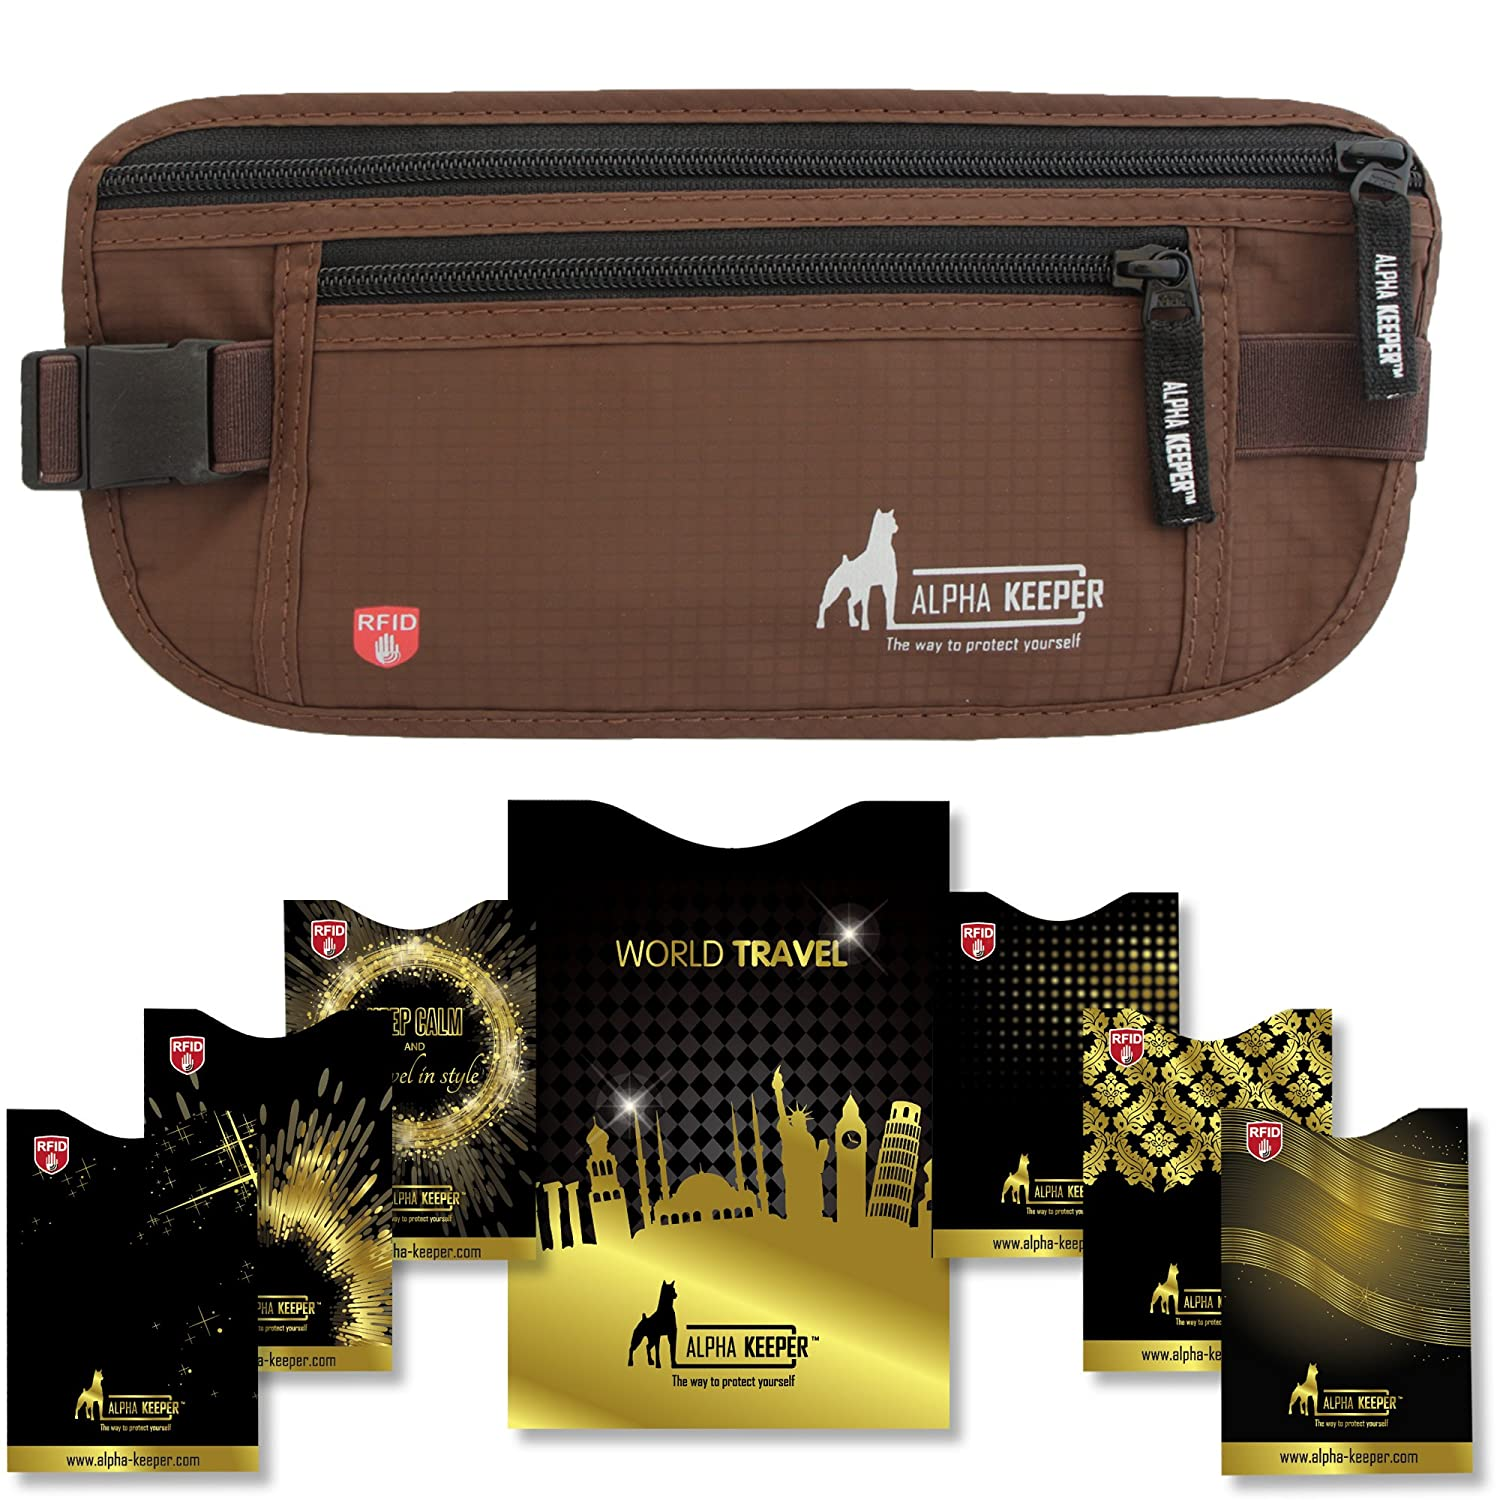 RFID Money Belt For Travel With RFID Blocking Sleeves Set For Daily Use Alpha Keeper AK-MB-BG-RFID